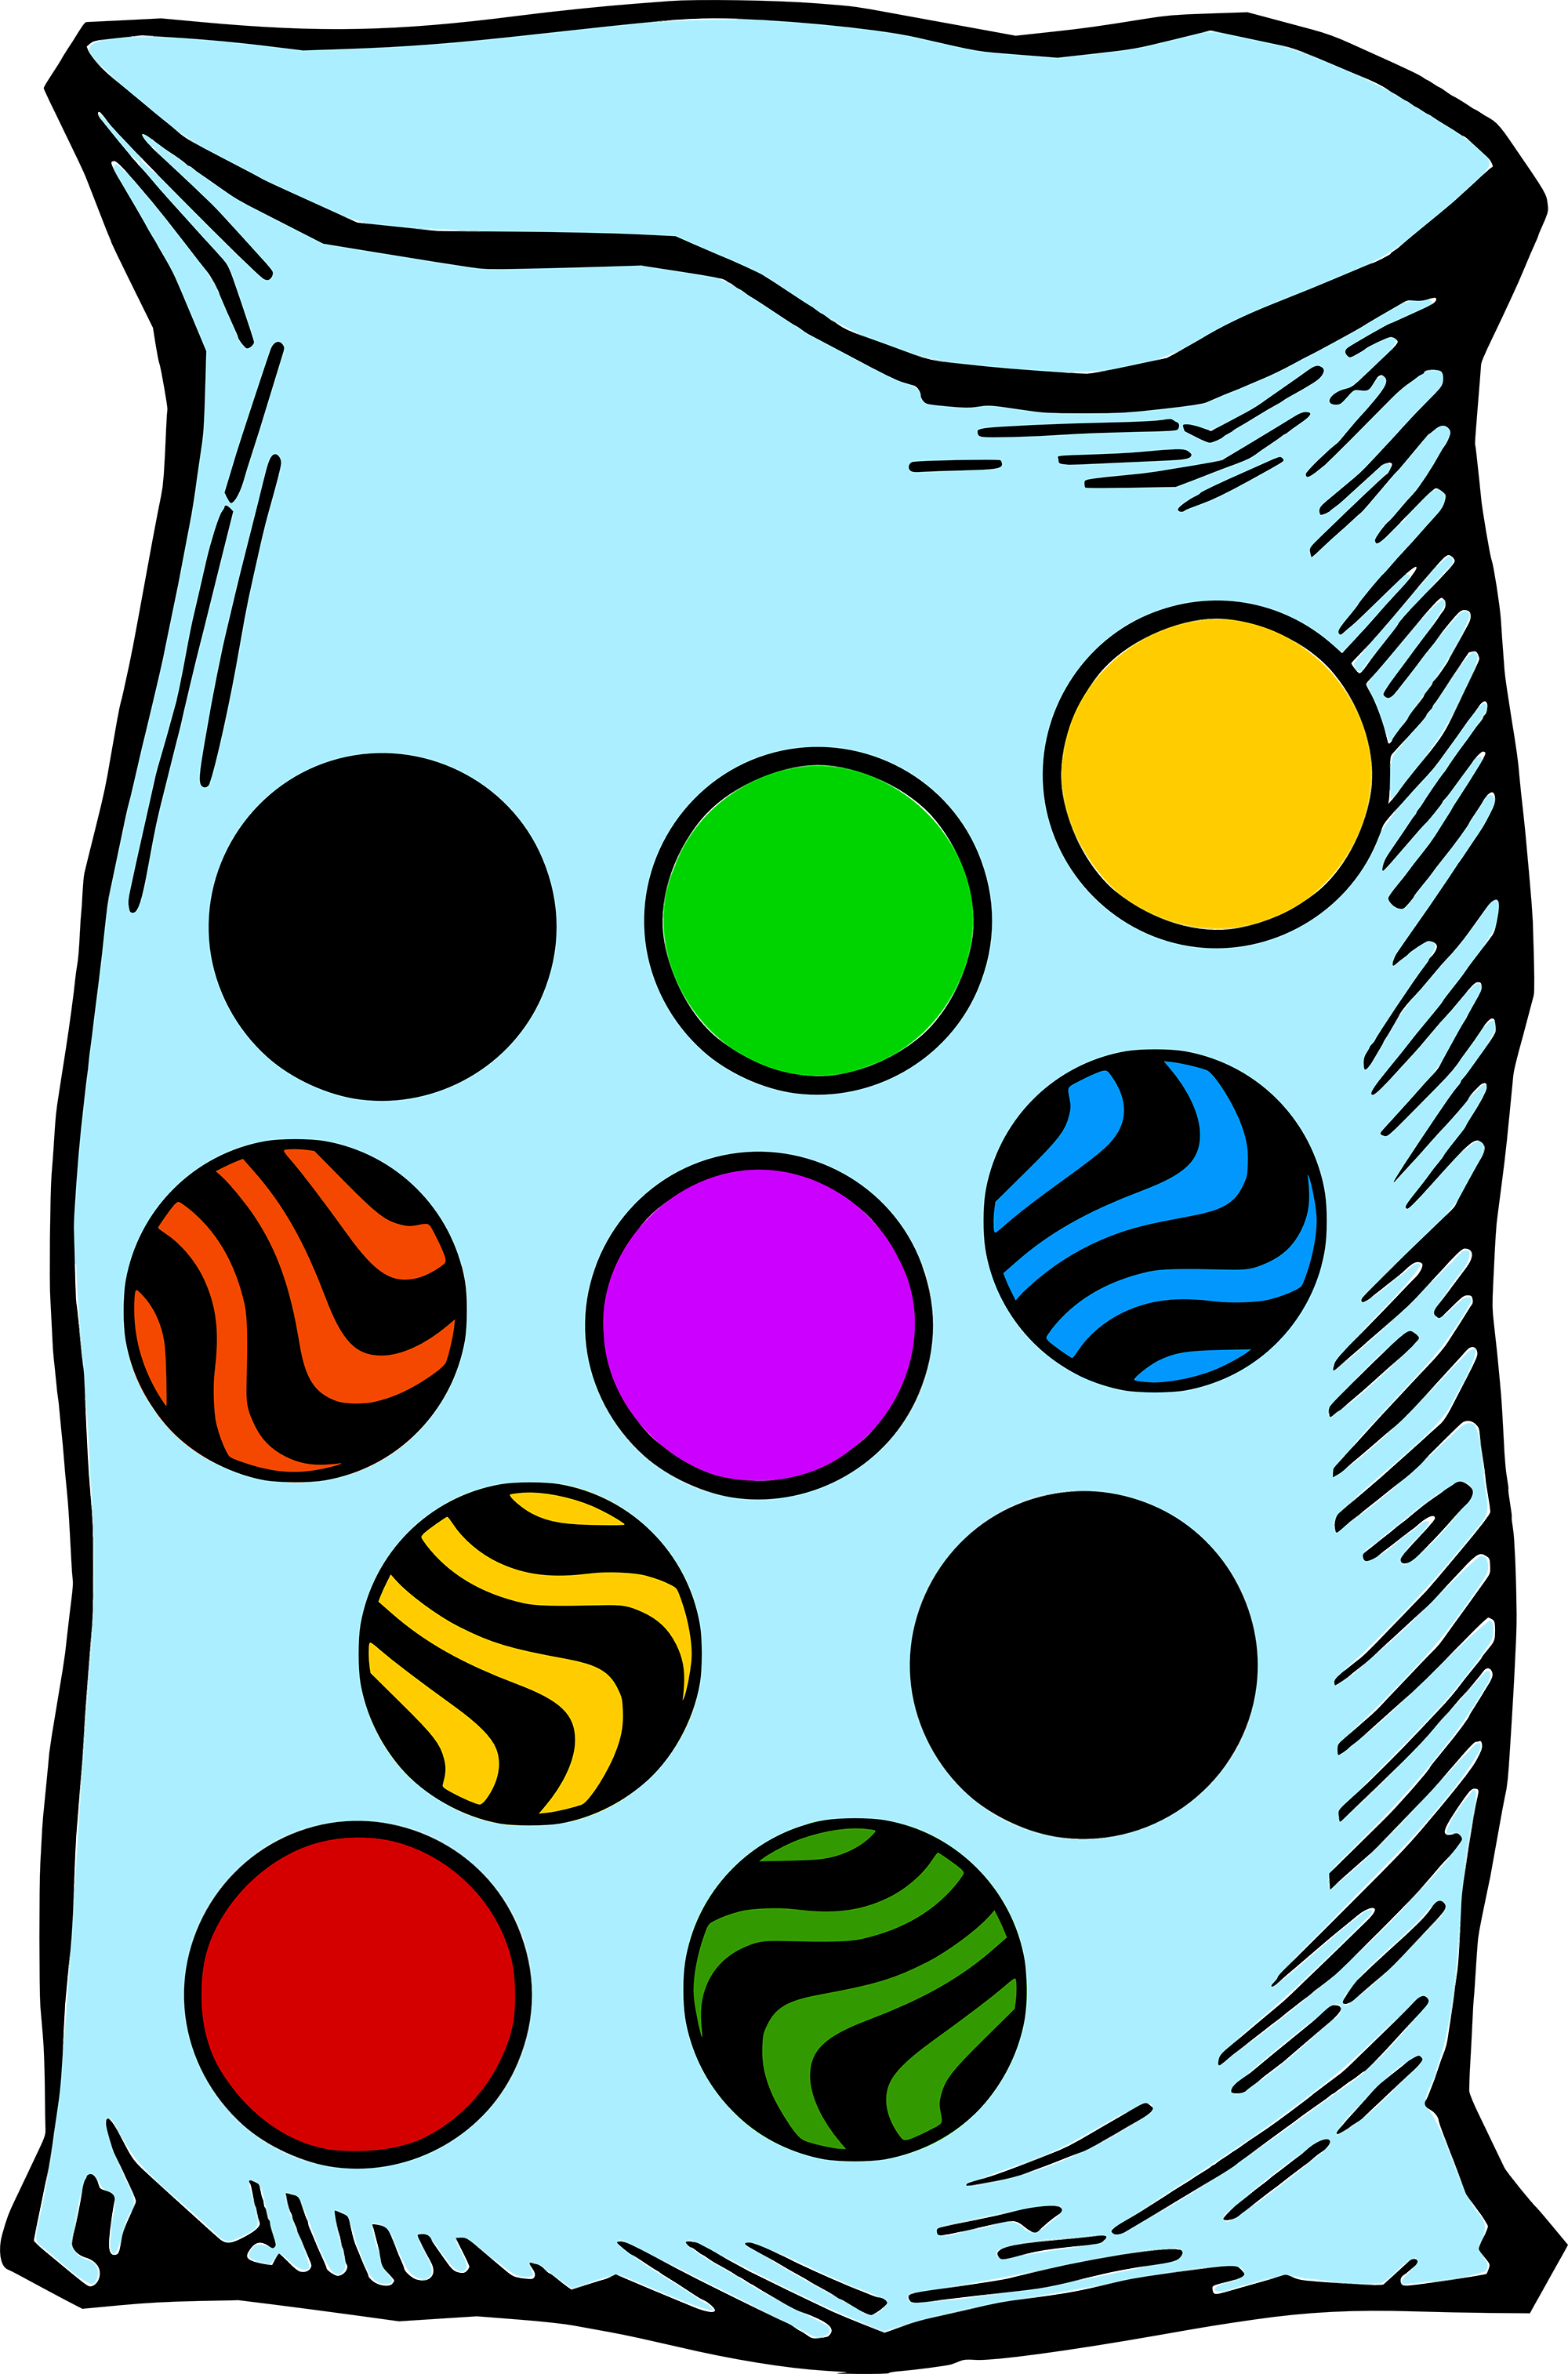 Download free clip art clipart library Free Clip Art Children's Marbles | Clip Art Department clipart library